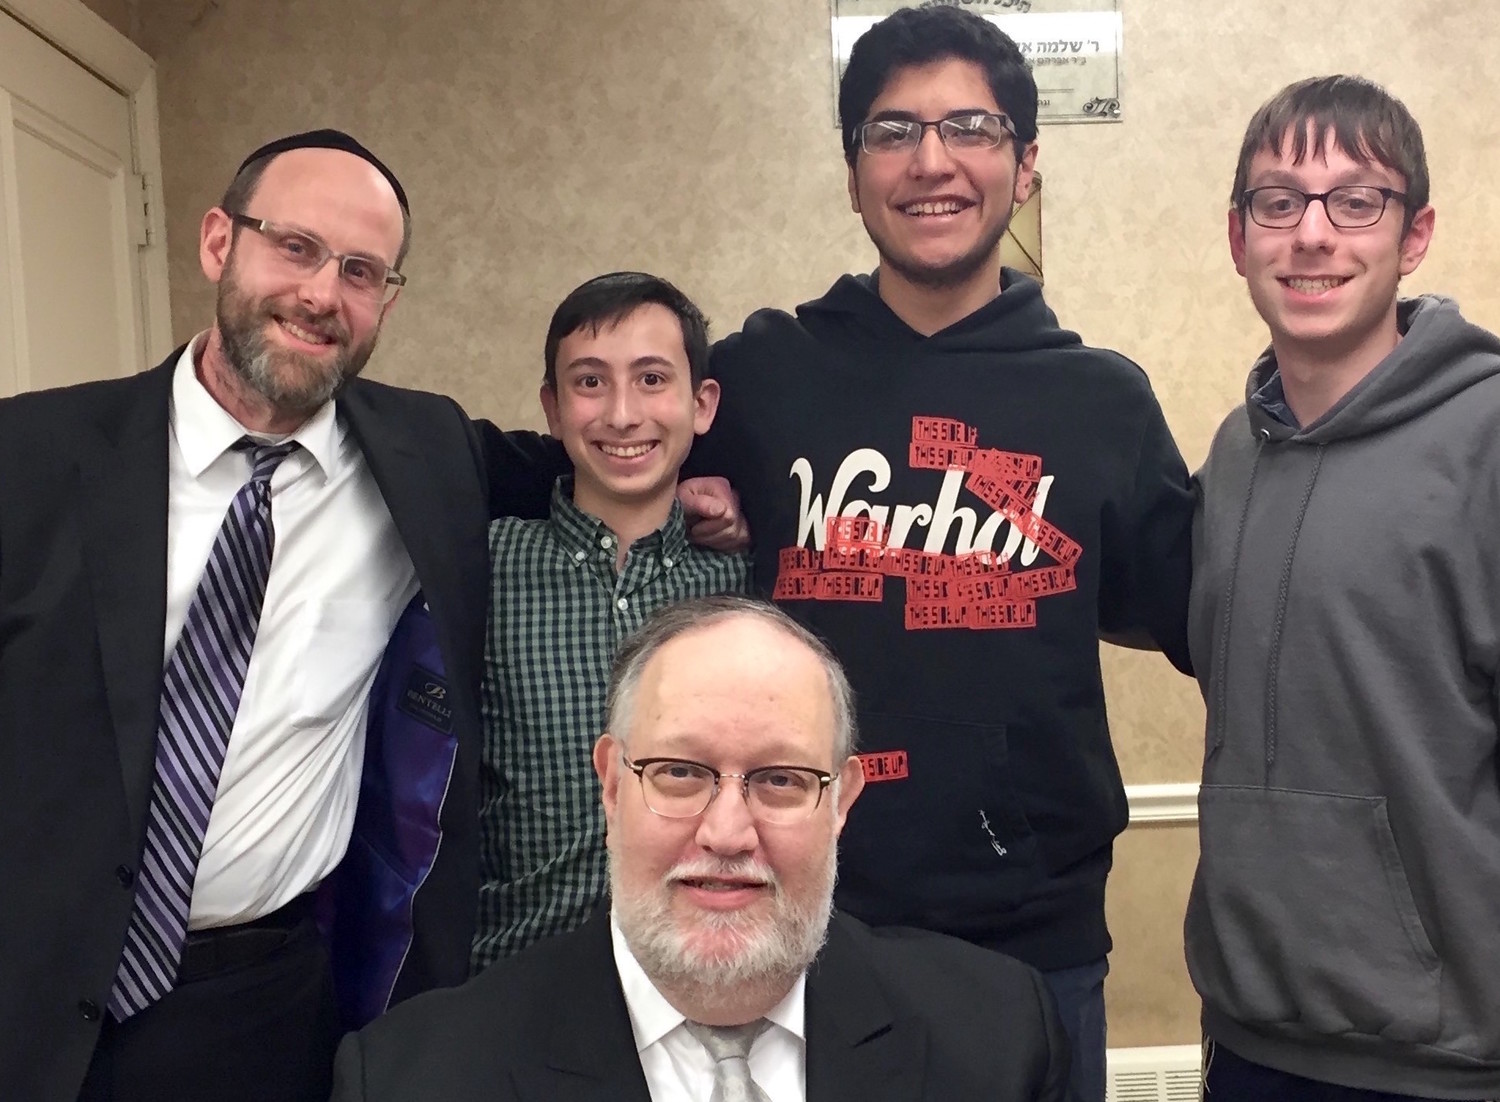 From left: Rabbi Shimon Chrein, Adam Speiser, Jonah Rocheeld, and Moshe Wieder. In front: Rabbi Mair Wolofsky, coordinator and founder of the Metropolitan Torah Bowl League in 1995.